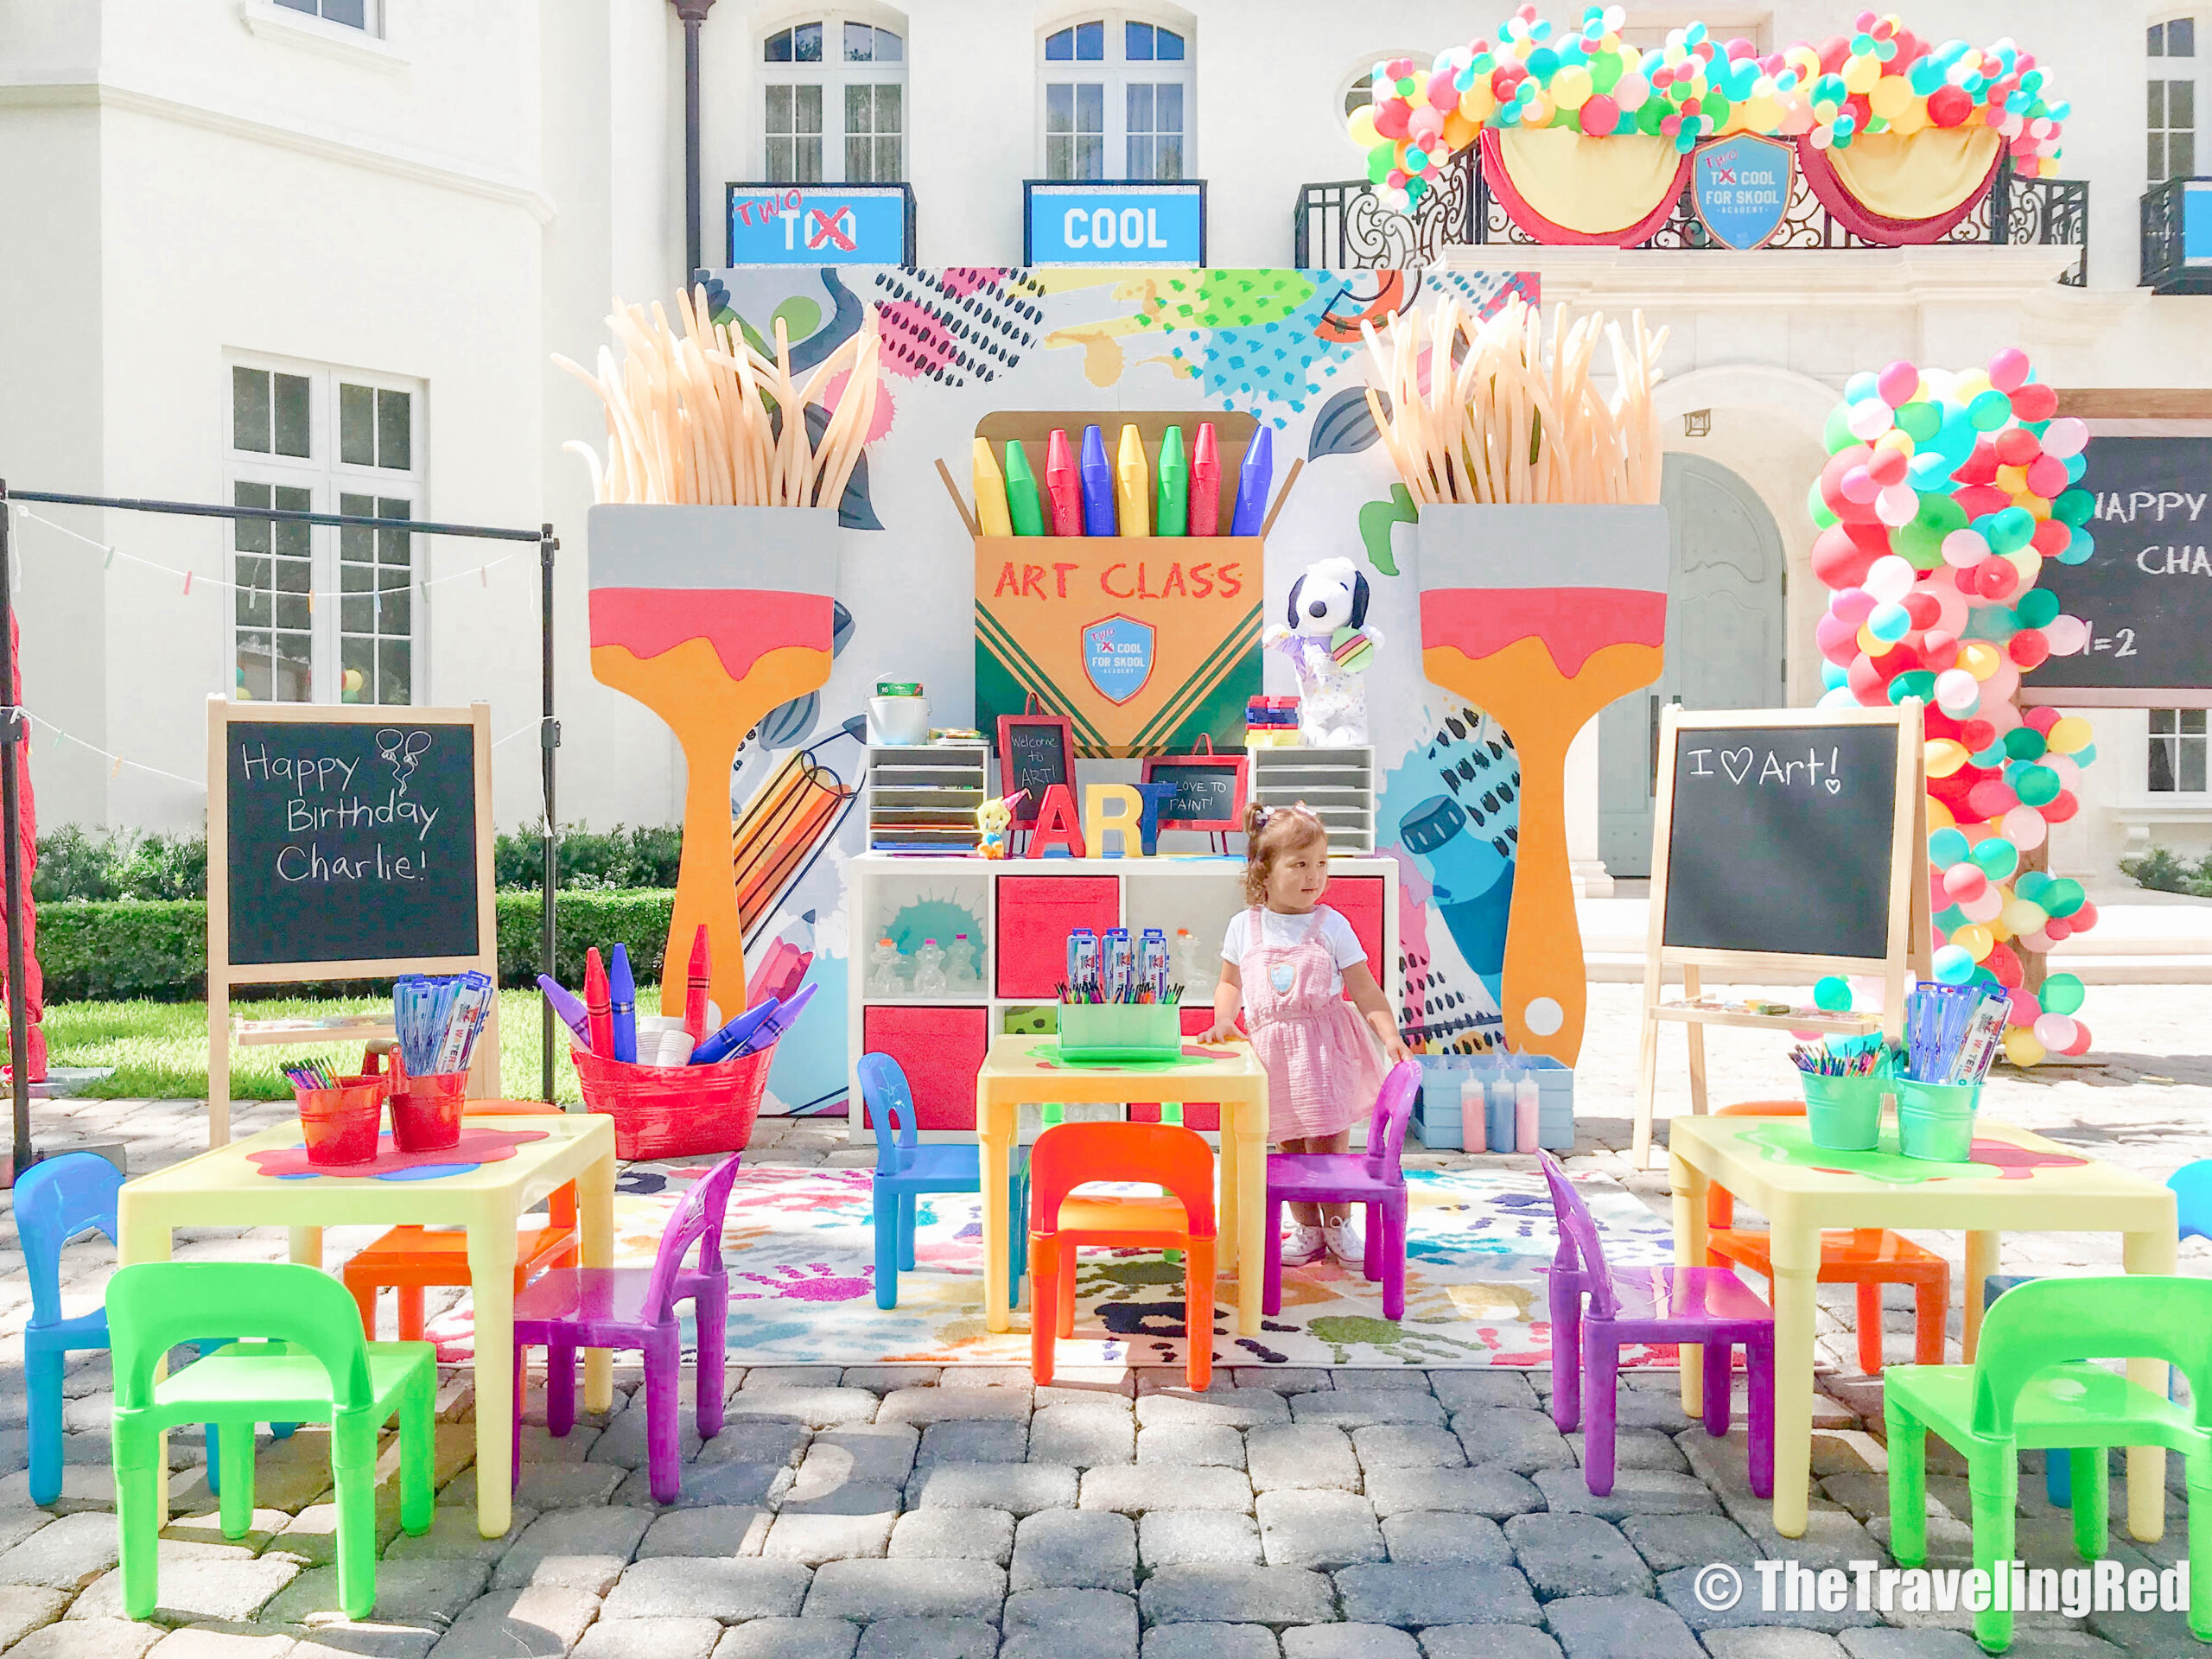 The dreamiest birthday party theme for a little girl - 2 Cool for Skool 2nd birthday party | Birthday Girl | 2nd Birthday | Colorful Theme | Art | Science | Balloons | School Homeschool | Learning Fun #birthdaygirl #birthdayparty #2ndbirthday #schooltheme #homeschool